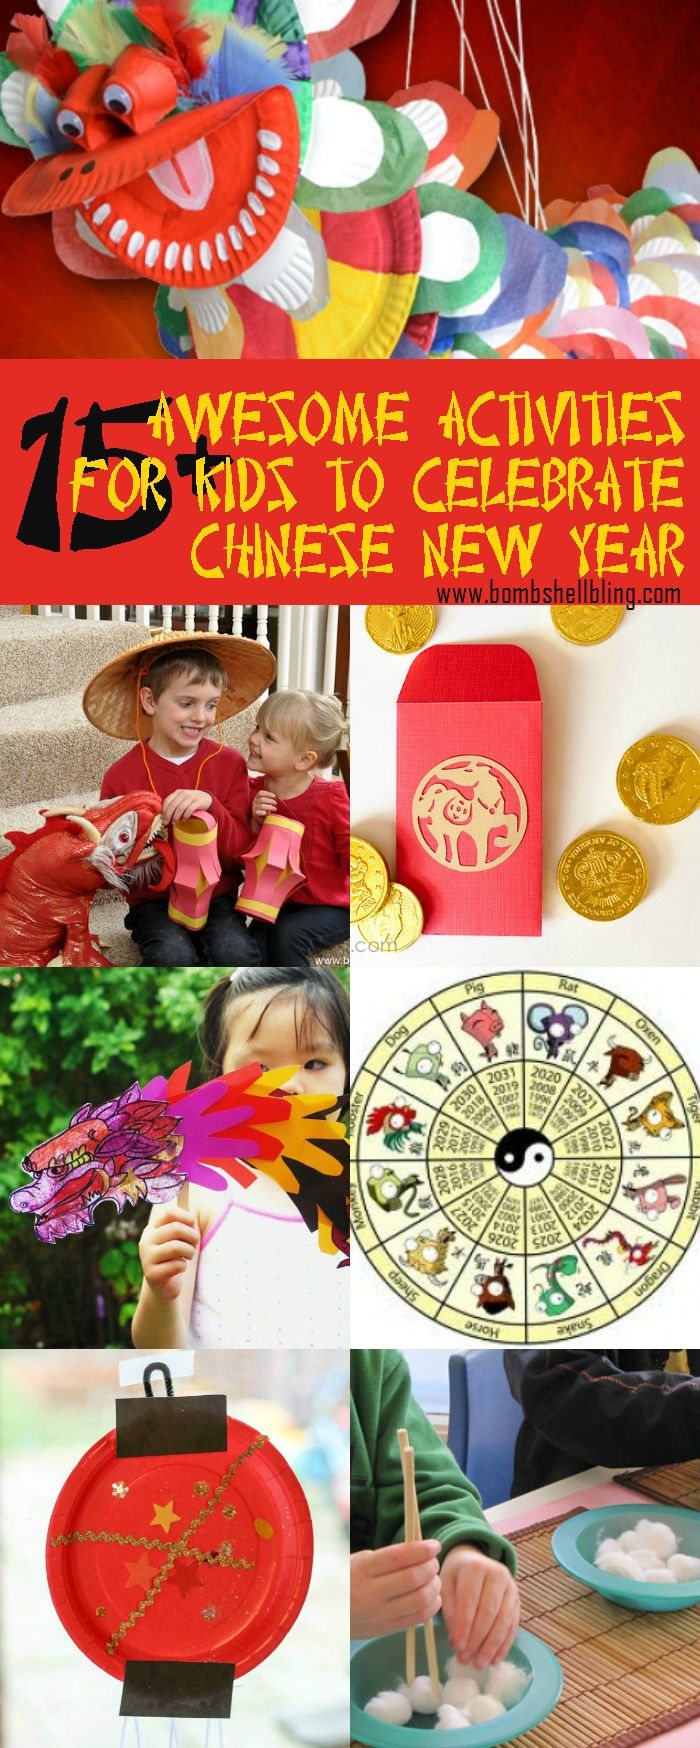 15 Chinese New Year Activities for Kids I love these